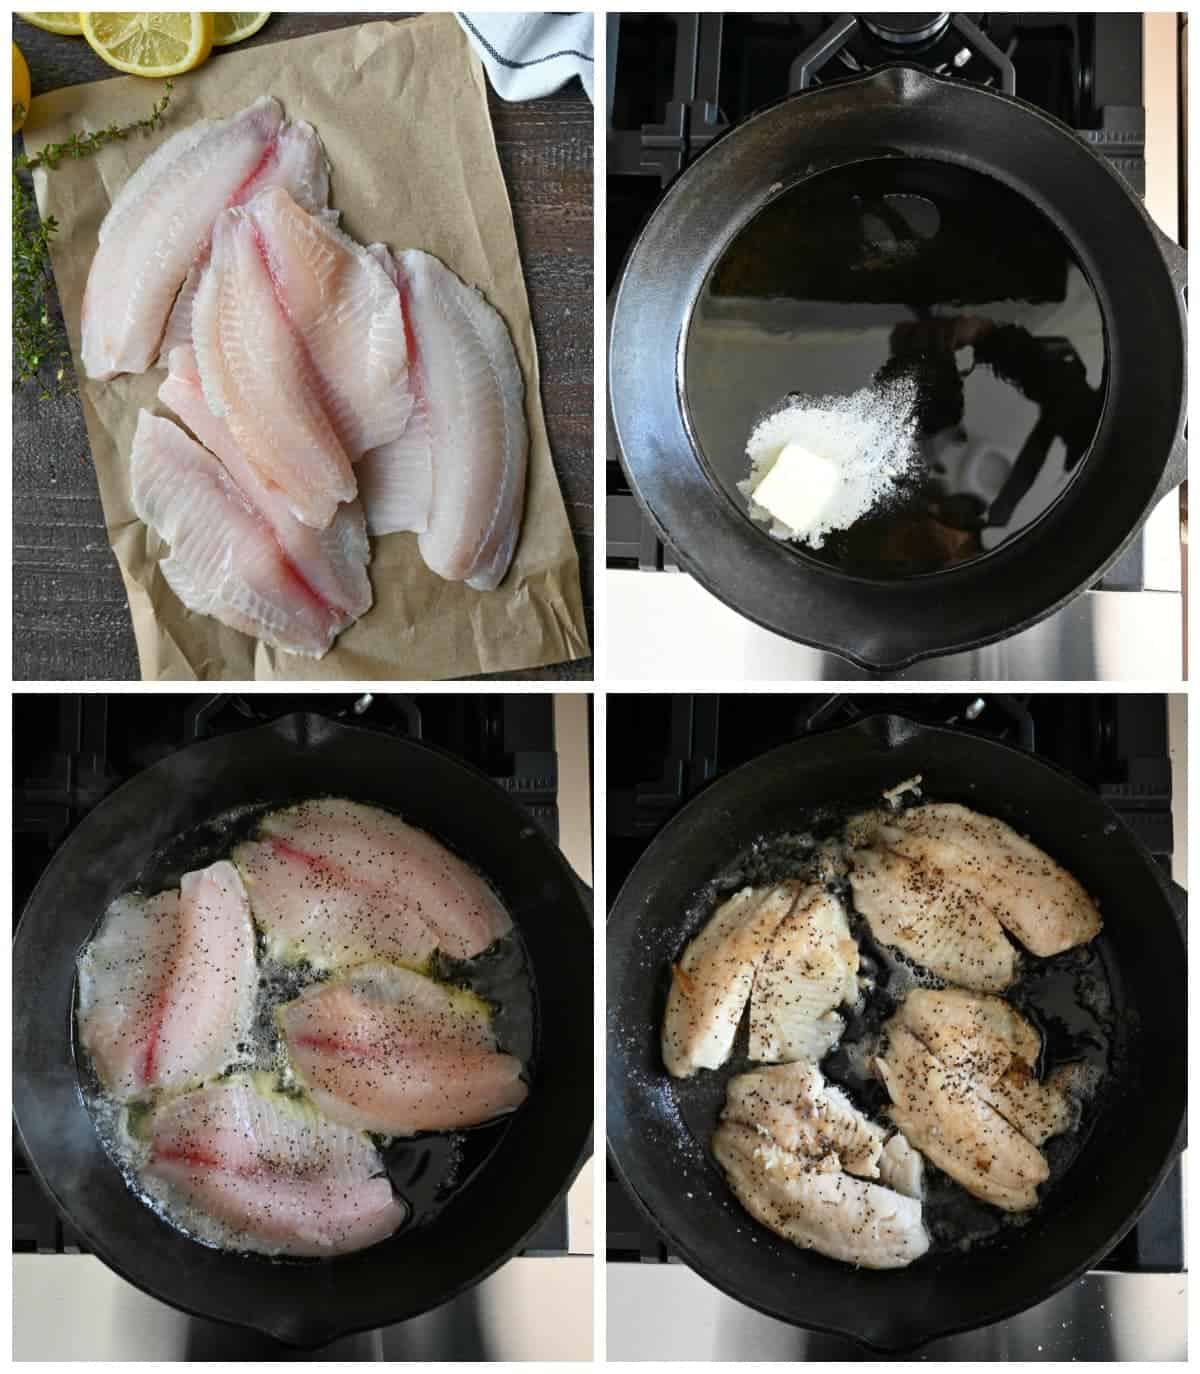 Four process photos. First one, fresh tilapia on parchment paper. Second one, olive oil and butter in a cast iron skillet. Third one, tilapia places in the skillet. Fourth one, tilapia that has been flipped.